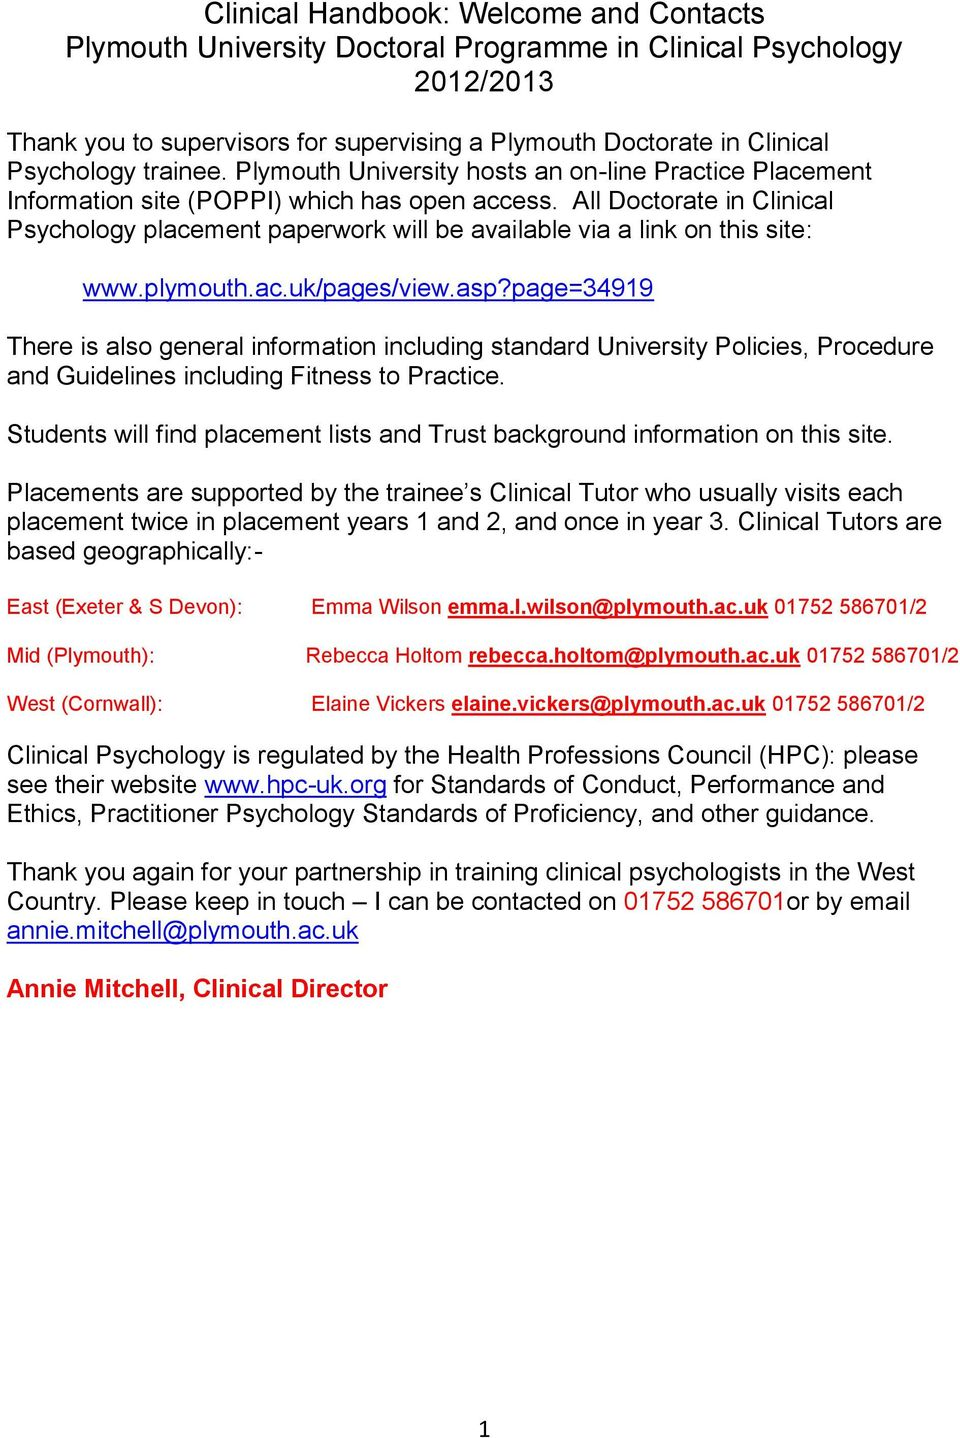 All Doctorate in Clinical Psychology placement paperwork will be available via a link on this site: www.plymouth.ac.uk/pages/view.asp?